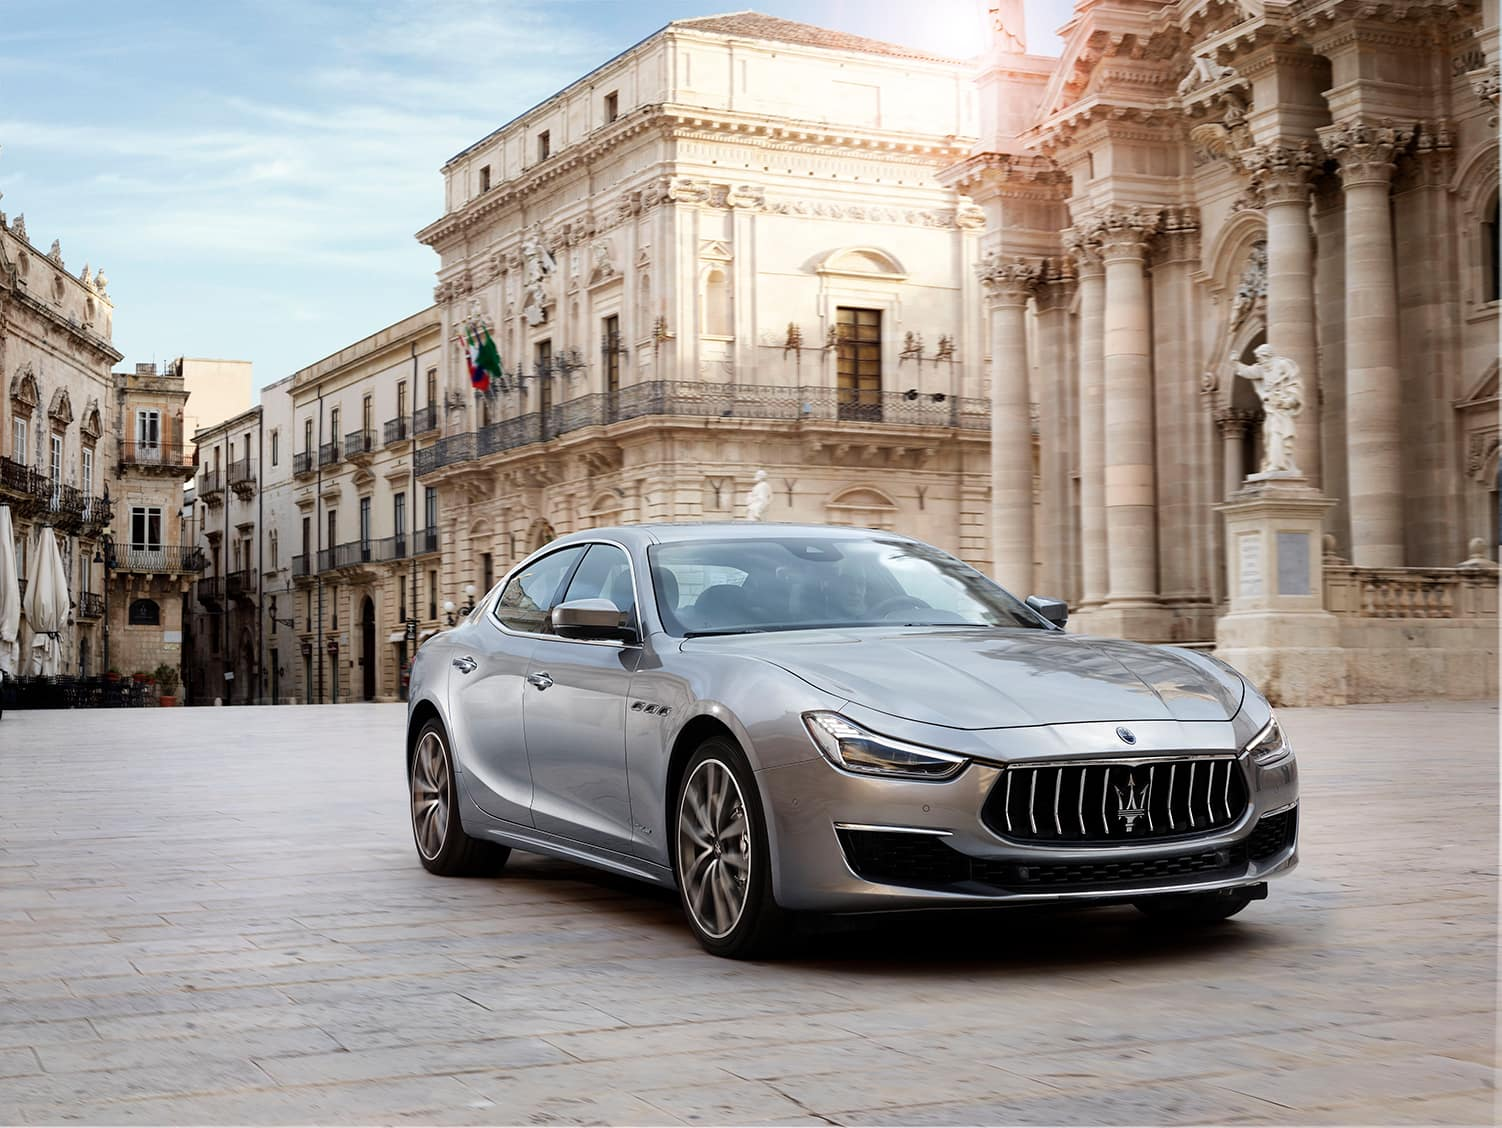 Bennett Maserati of Allentown is a Car Dealership near Westwood Heights PA in Allentown | 2020 Maserati Ghibli parked outside of Italian buildings